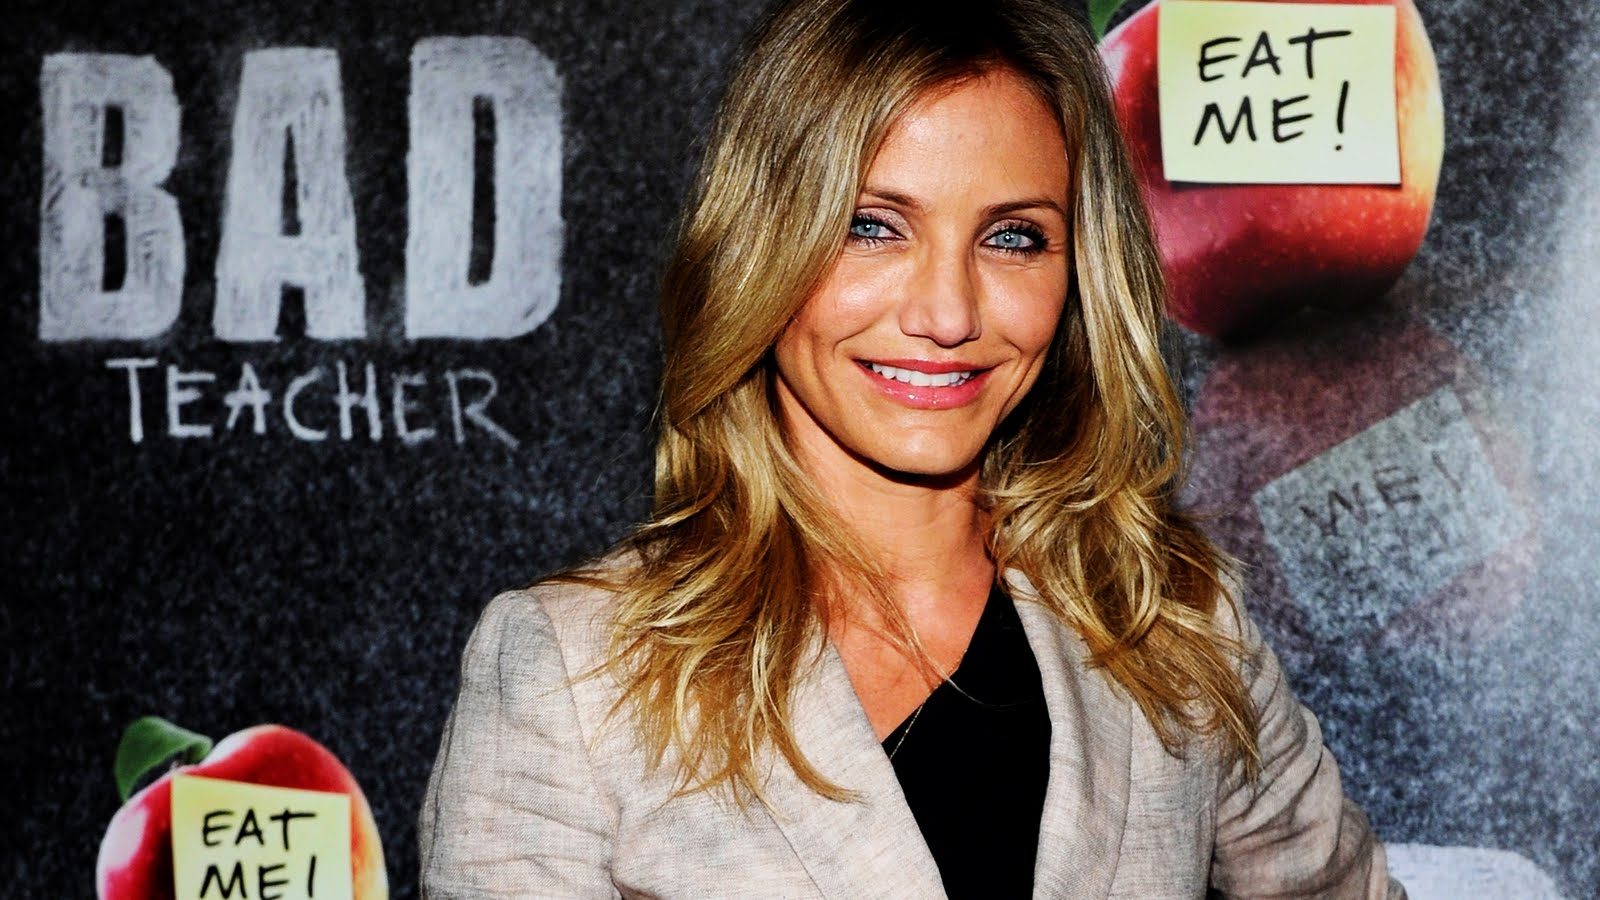 http://1.bp.blogspot.com/-bvnUaJZyO0s/Tf83PJVD3mI/AAAAAAAAEbc/mrSzFq9b_Uk/s1600/Bad-Teacher-Cameron-Diaz-wallpapers%2B%25287%2529.jpg